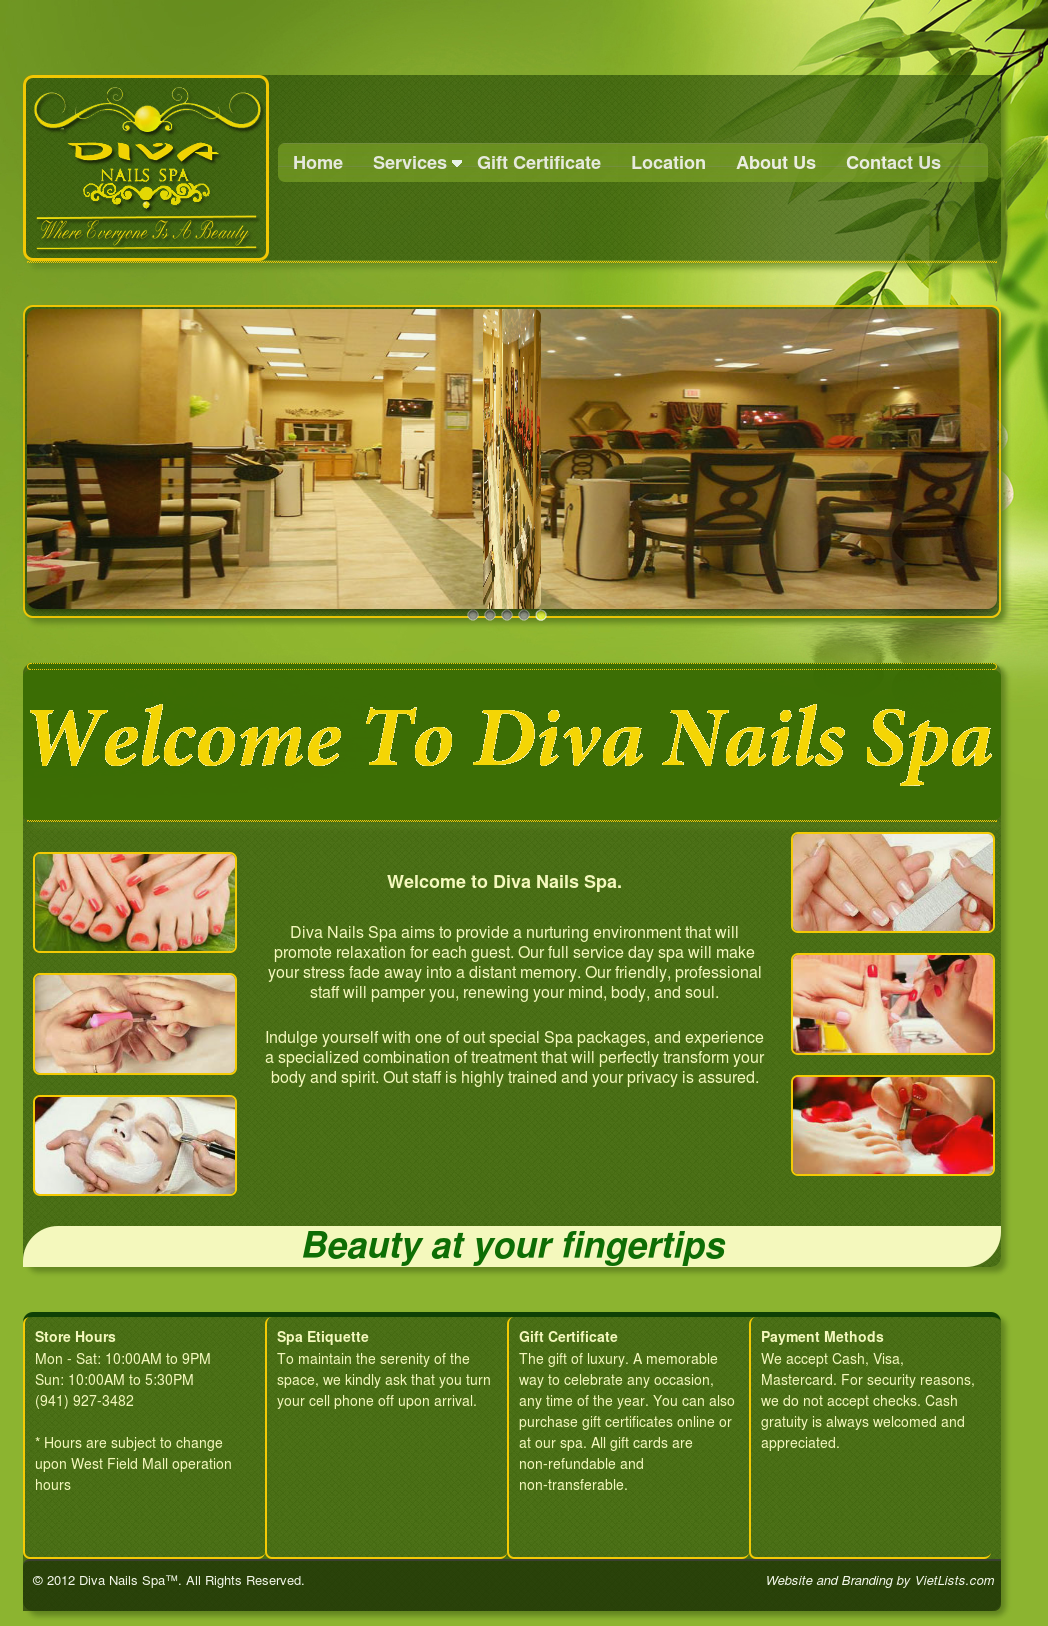 Diva Nails Spa Competitors, Revenue and Employees - Owler Company ...